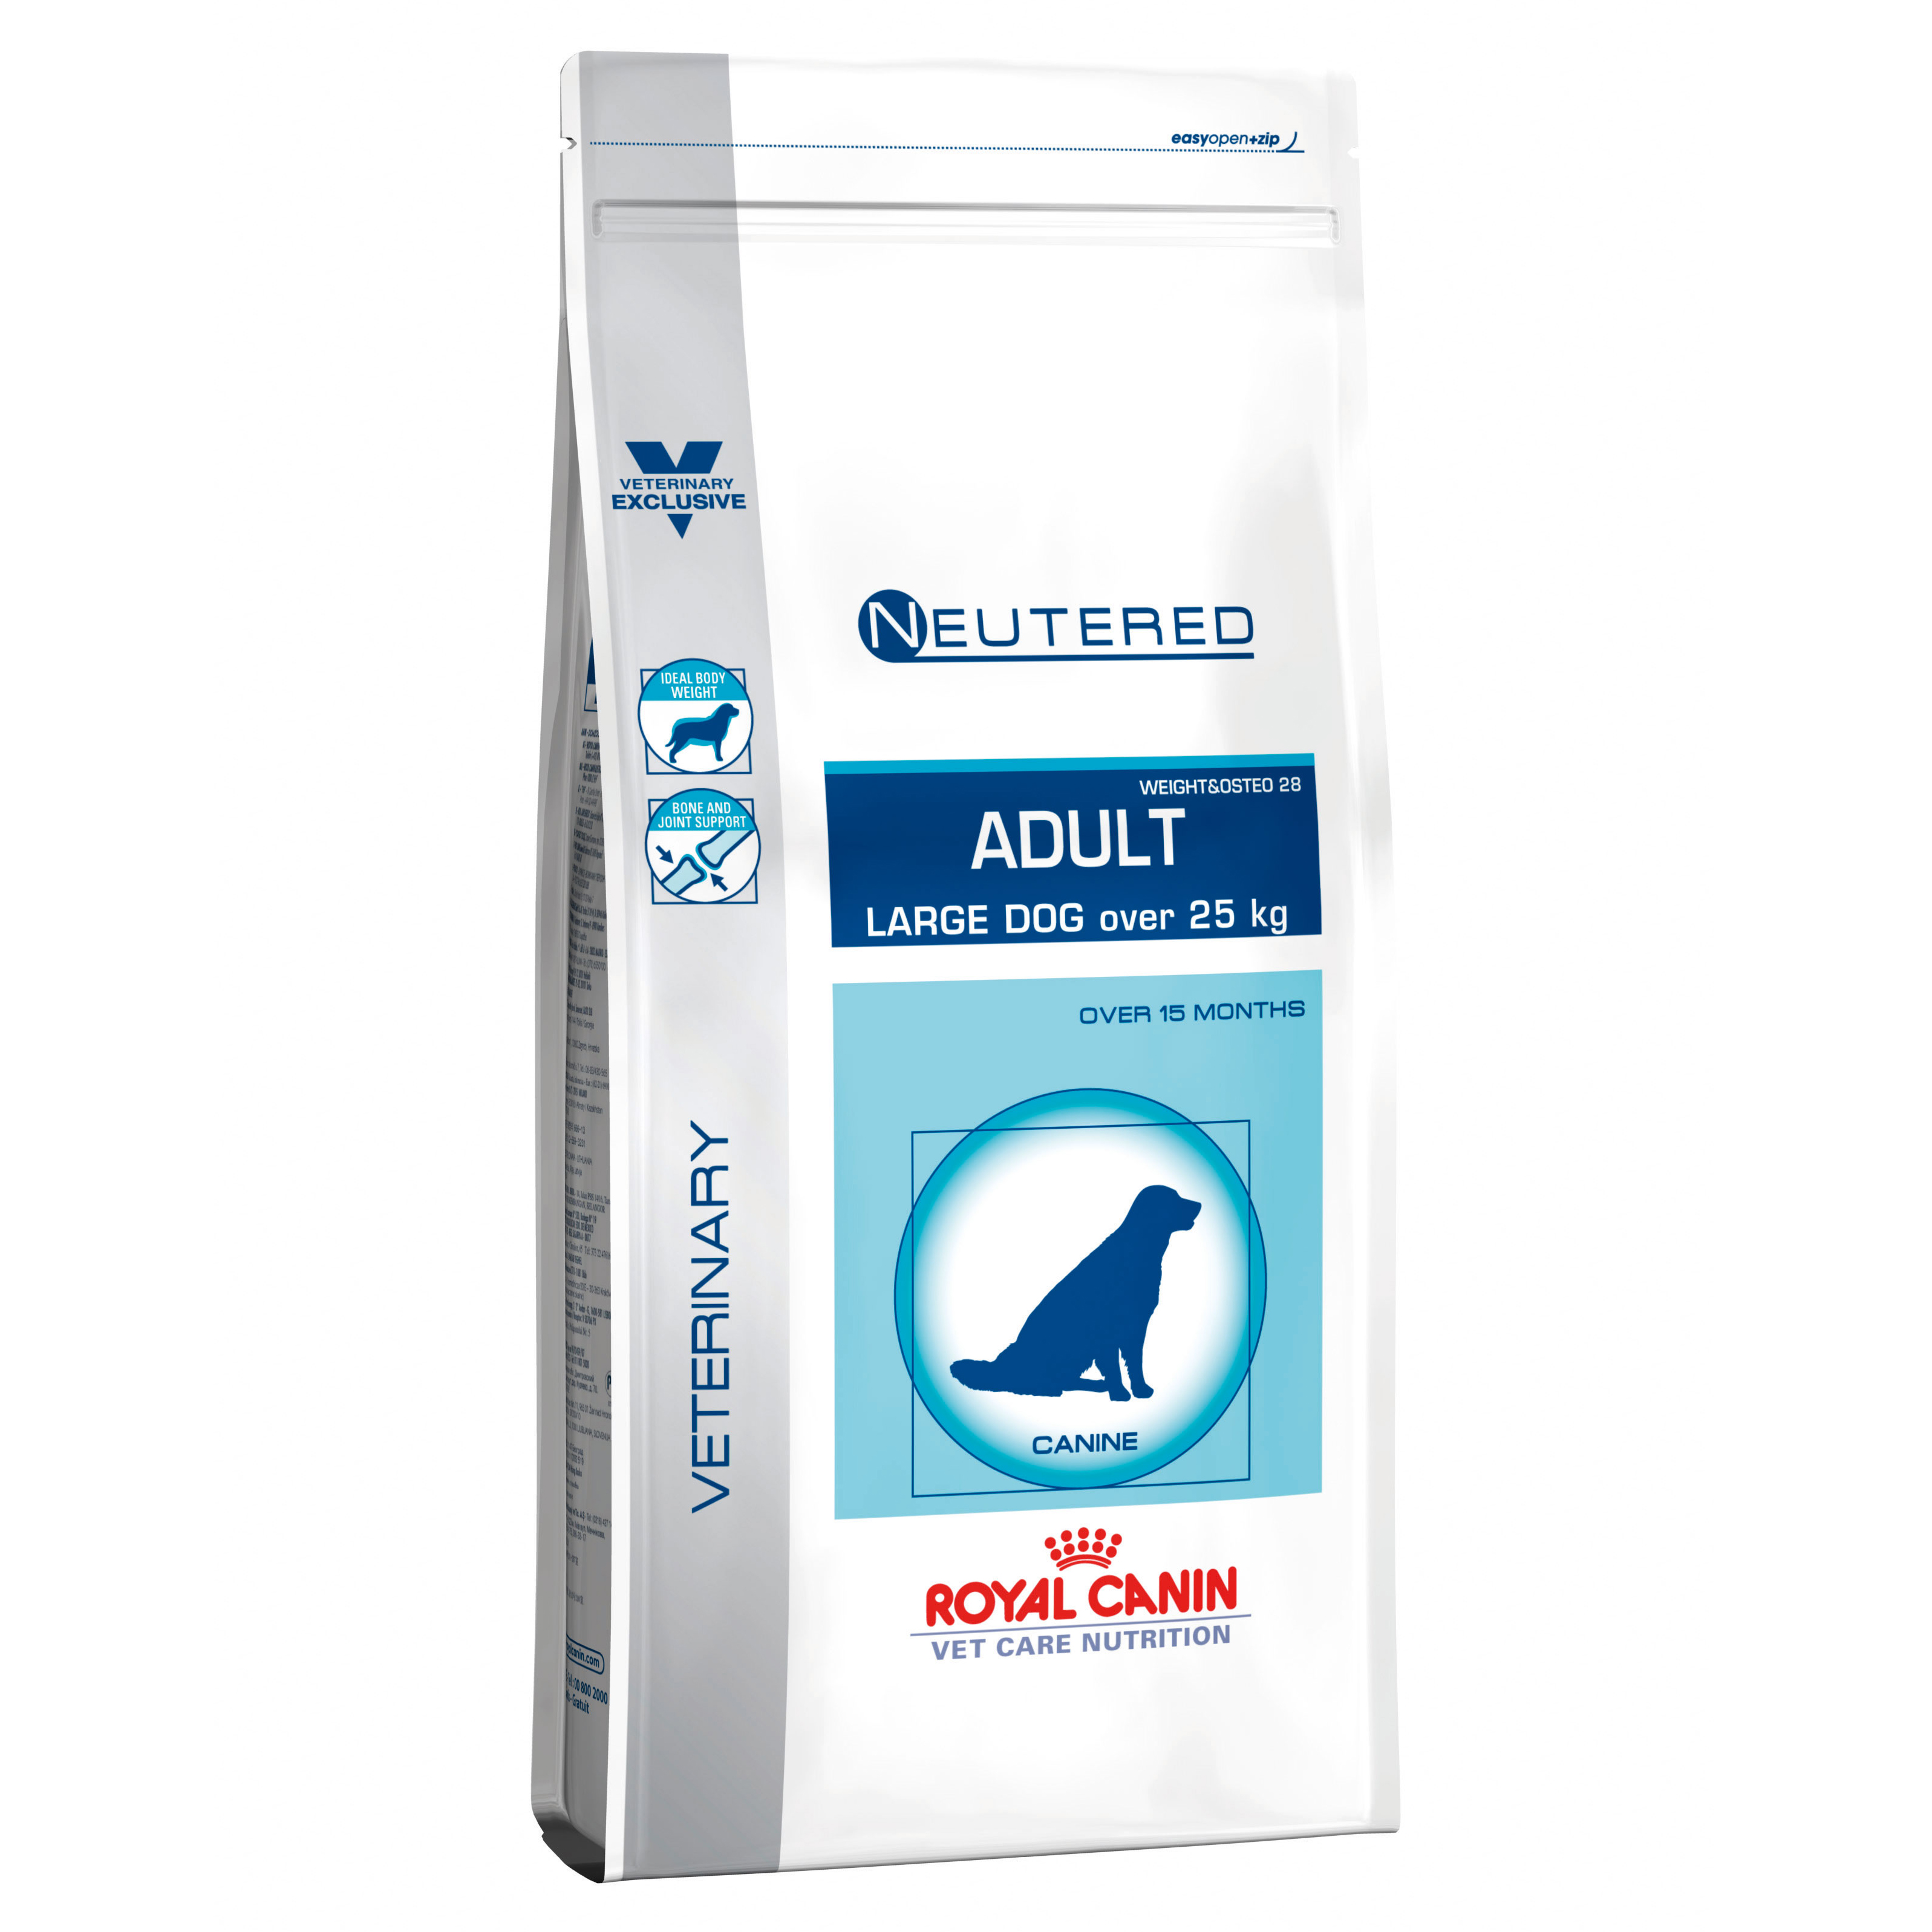 Royal Canin Vet Care Nutrition Neutered Adult Large Dog (Weight & Osteo 28) Dry 3.5kg on Animed Direct